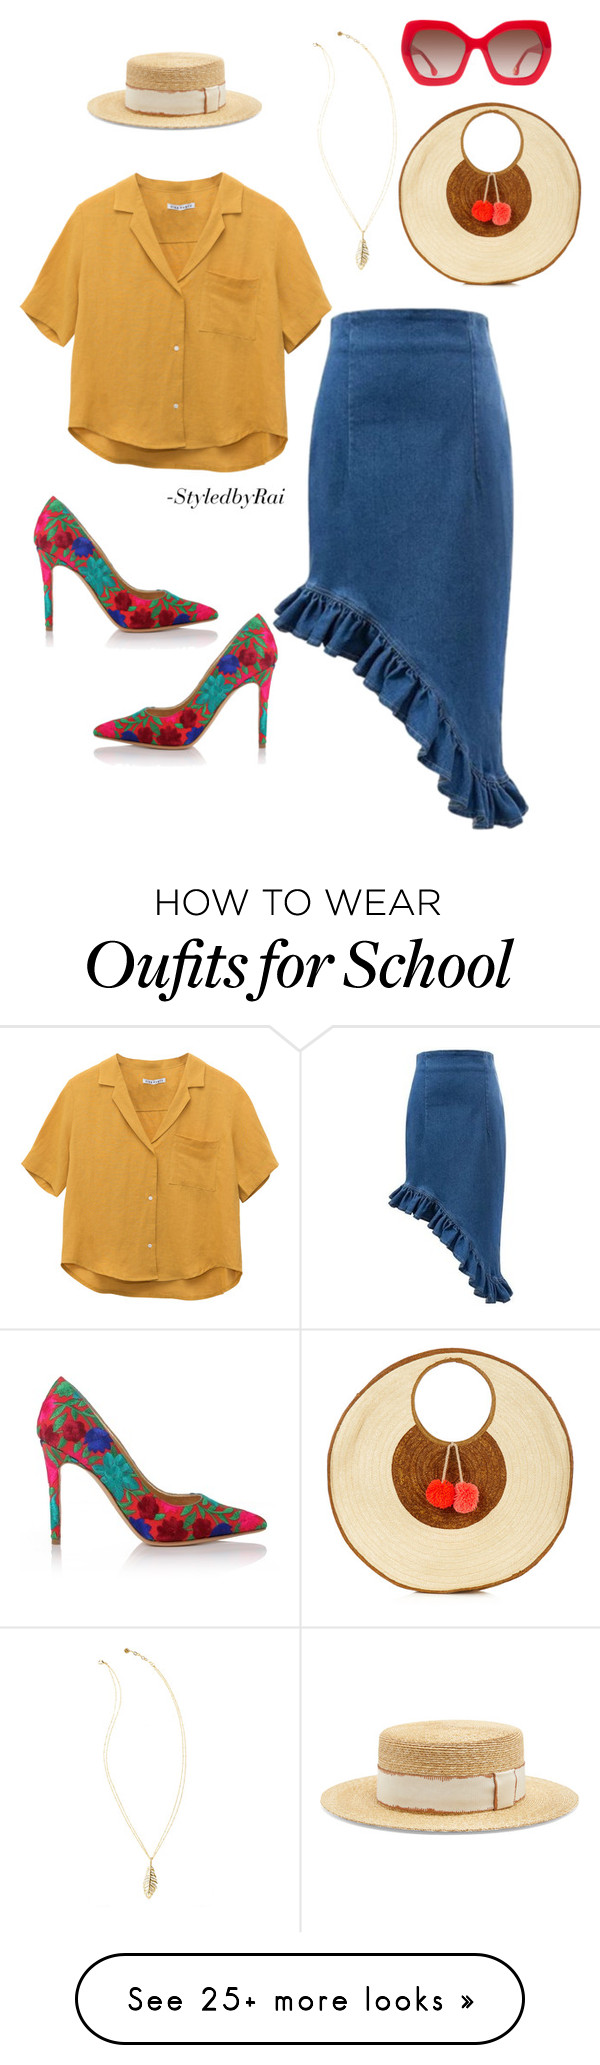 """School's Out"" by shellishells on Polyvore featuring"